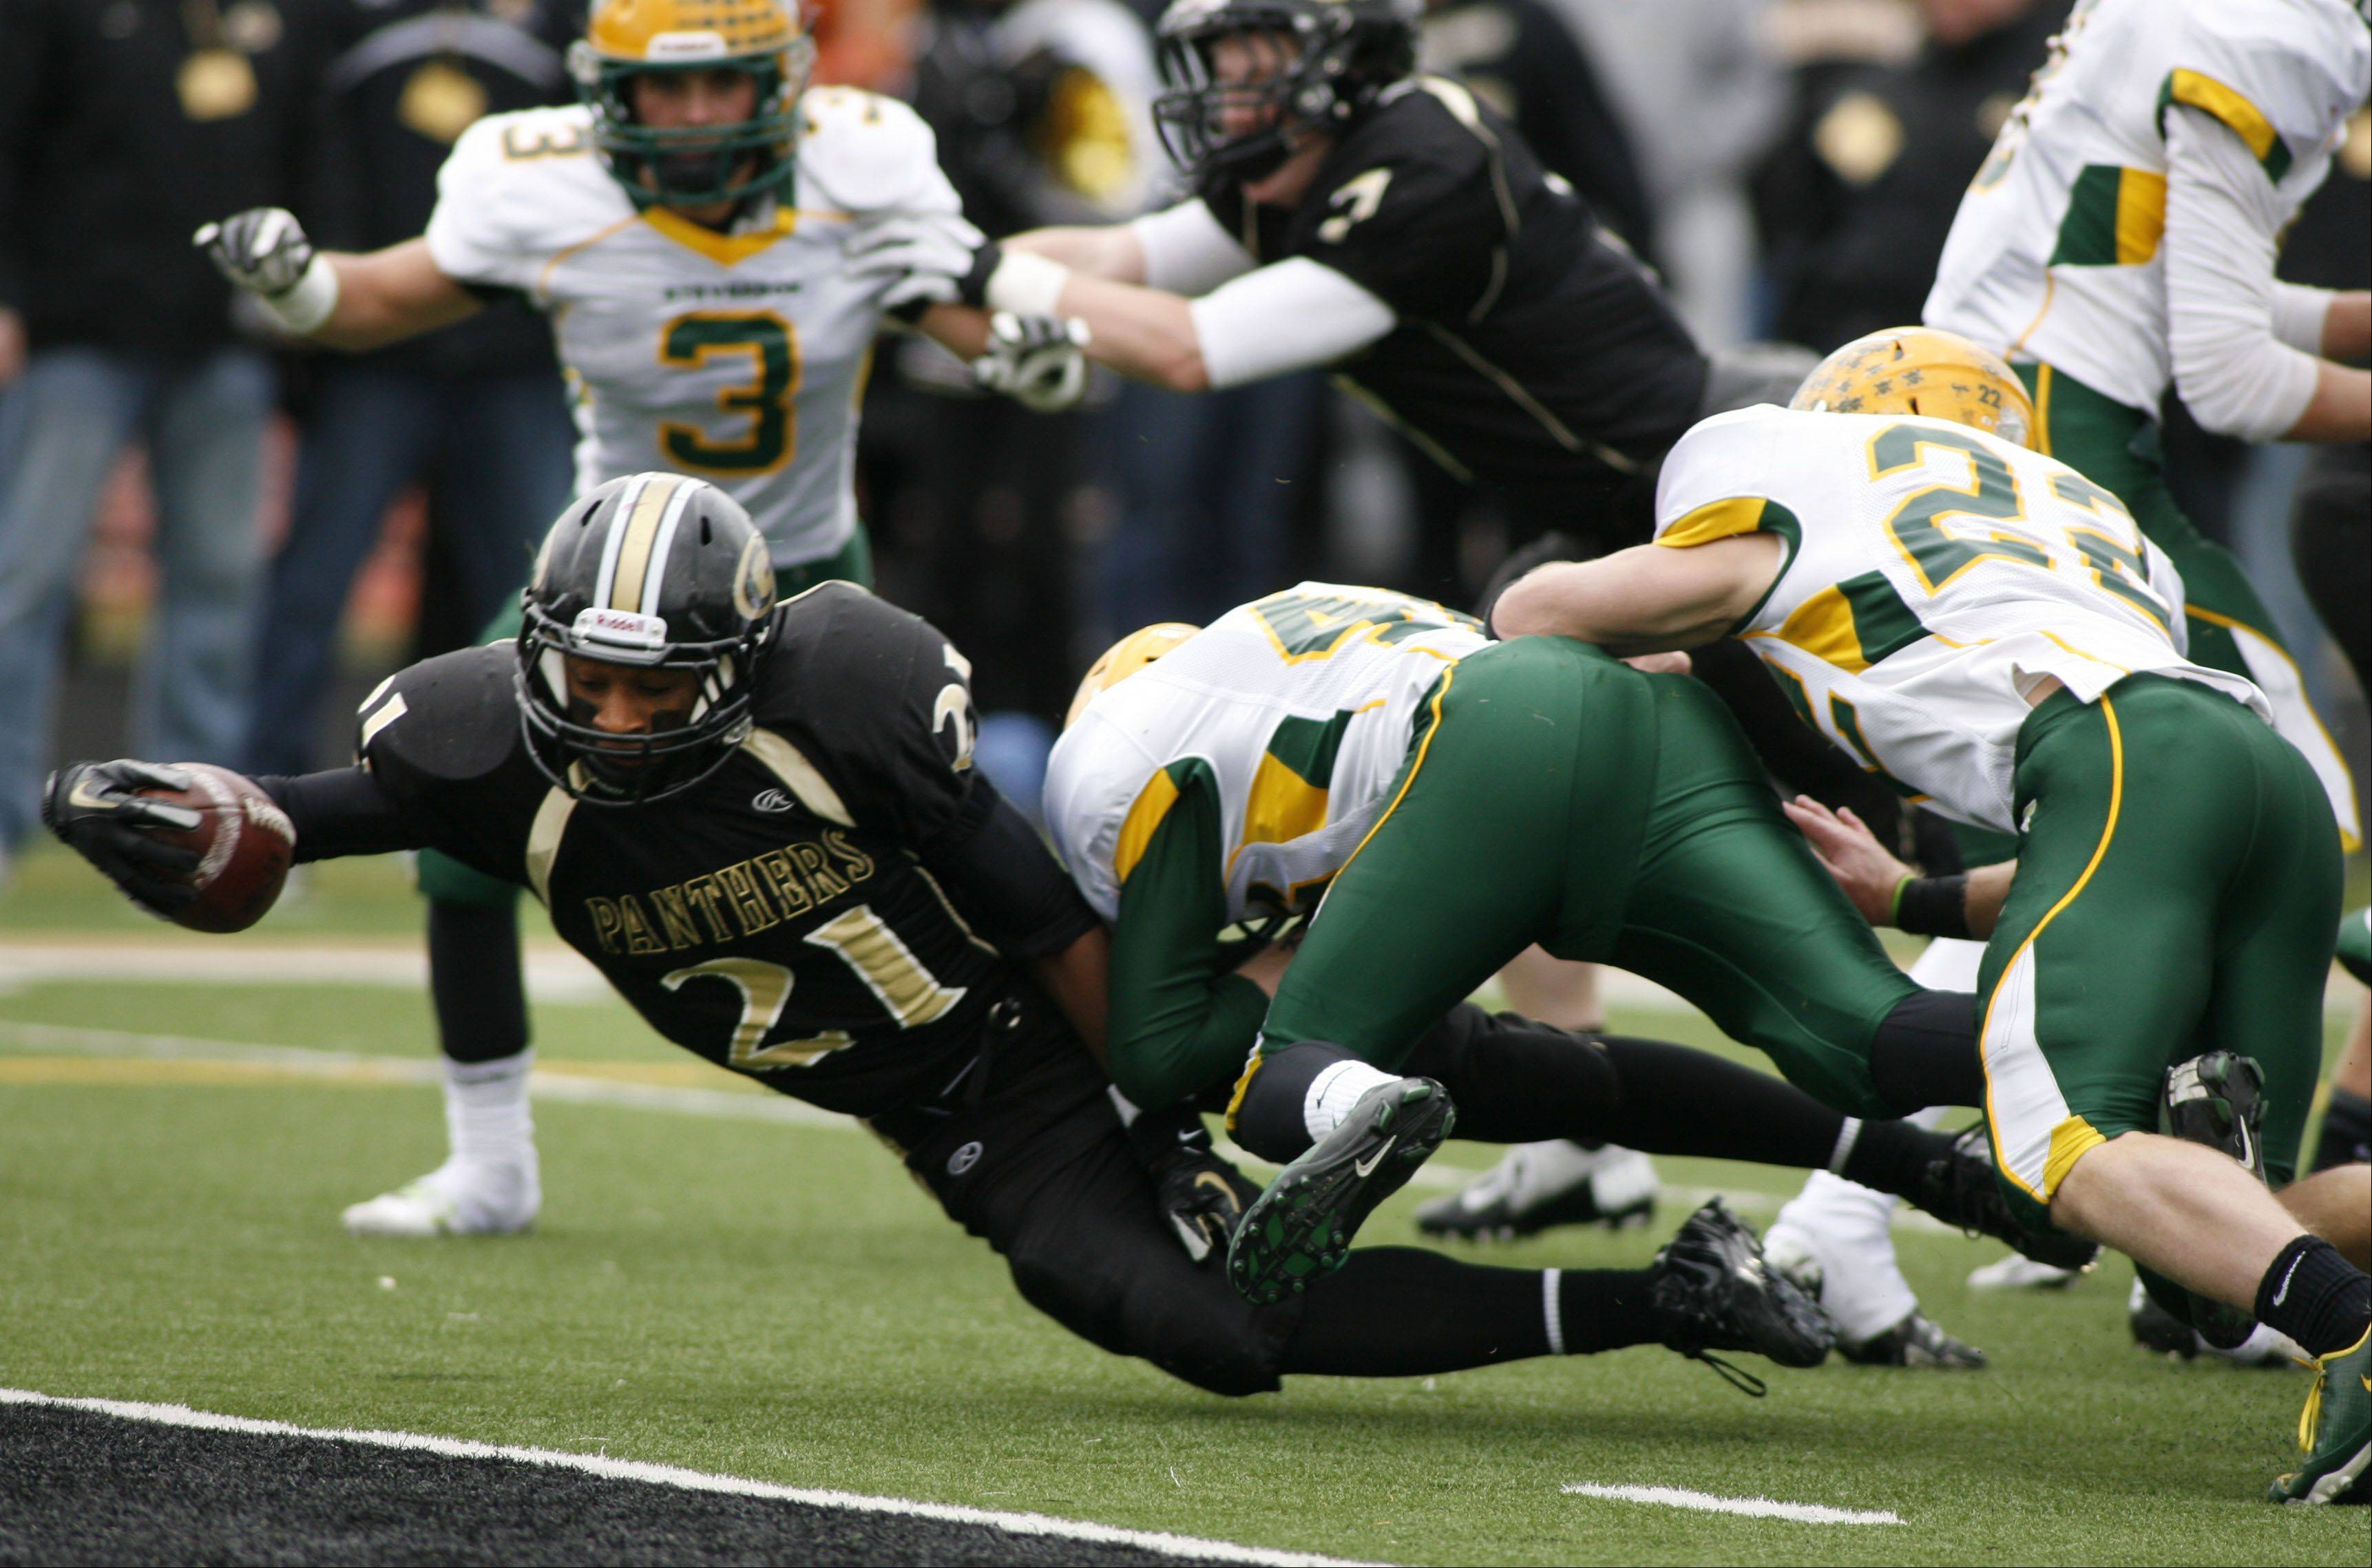 Glenbard North's Justin Jackson extends for a touchdown against Stevenson during second-round Class 8A playoff action Saturday in Carol Stream.